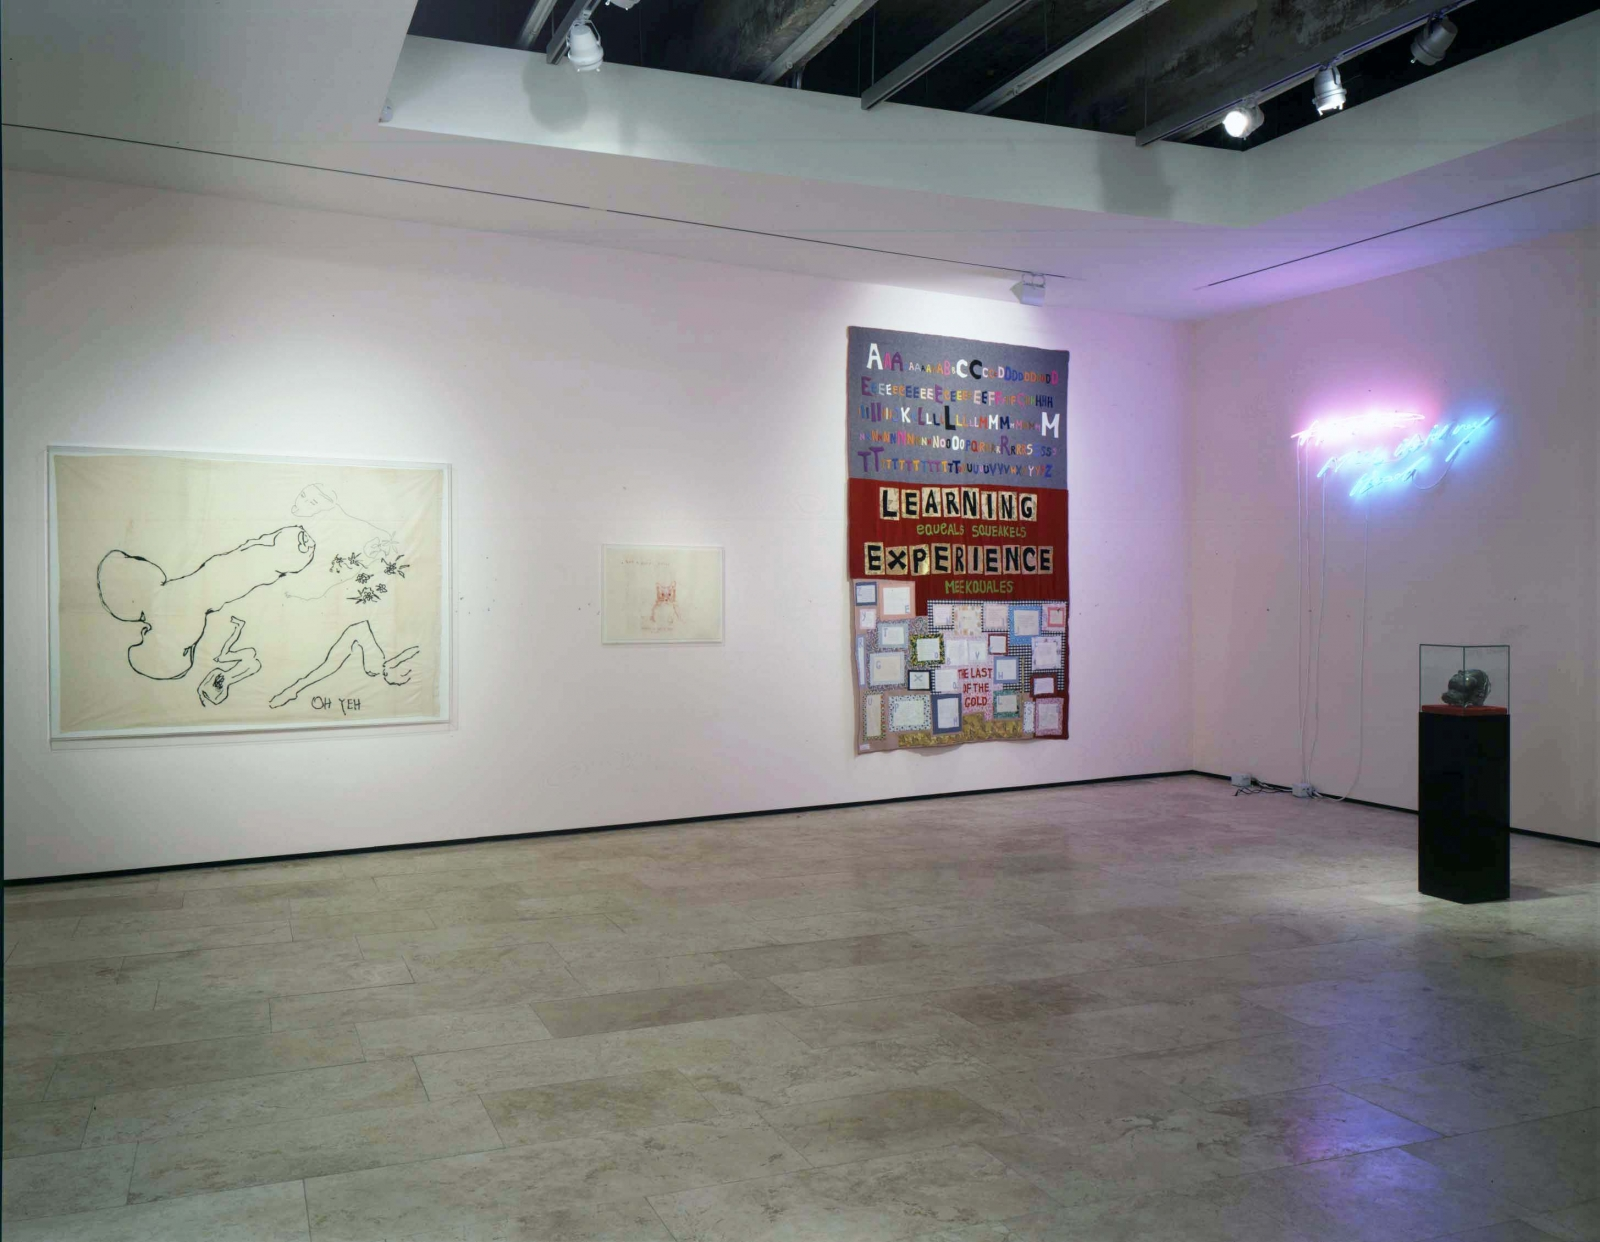 Tracey Emin: I Think It's In My Head Installation view, Lehmann Maupin Gallery 21 September - 19 October 2002 view 3